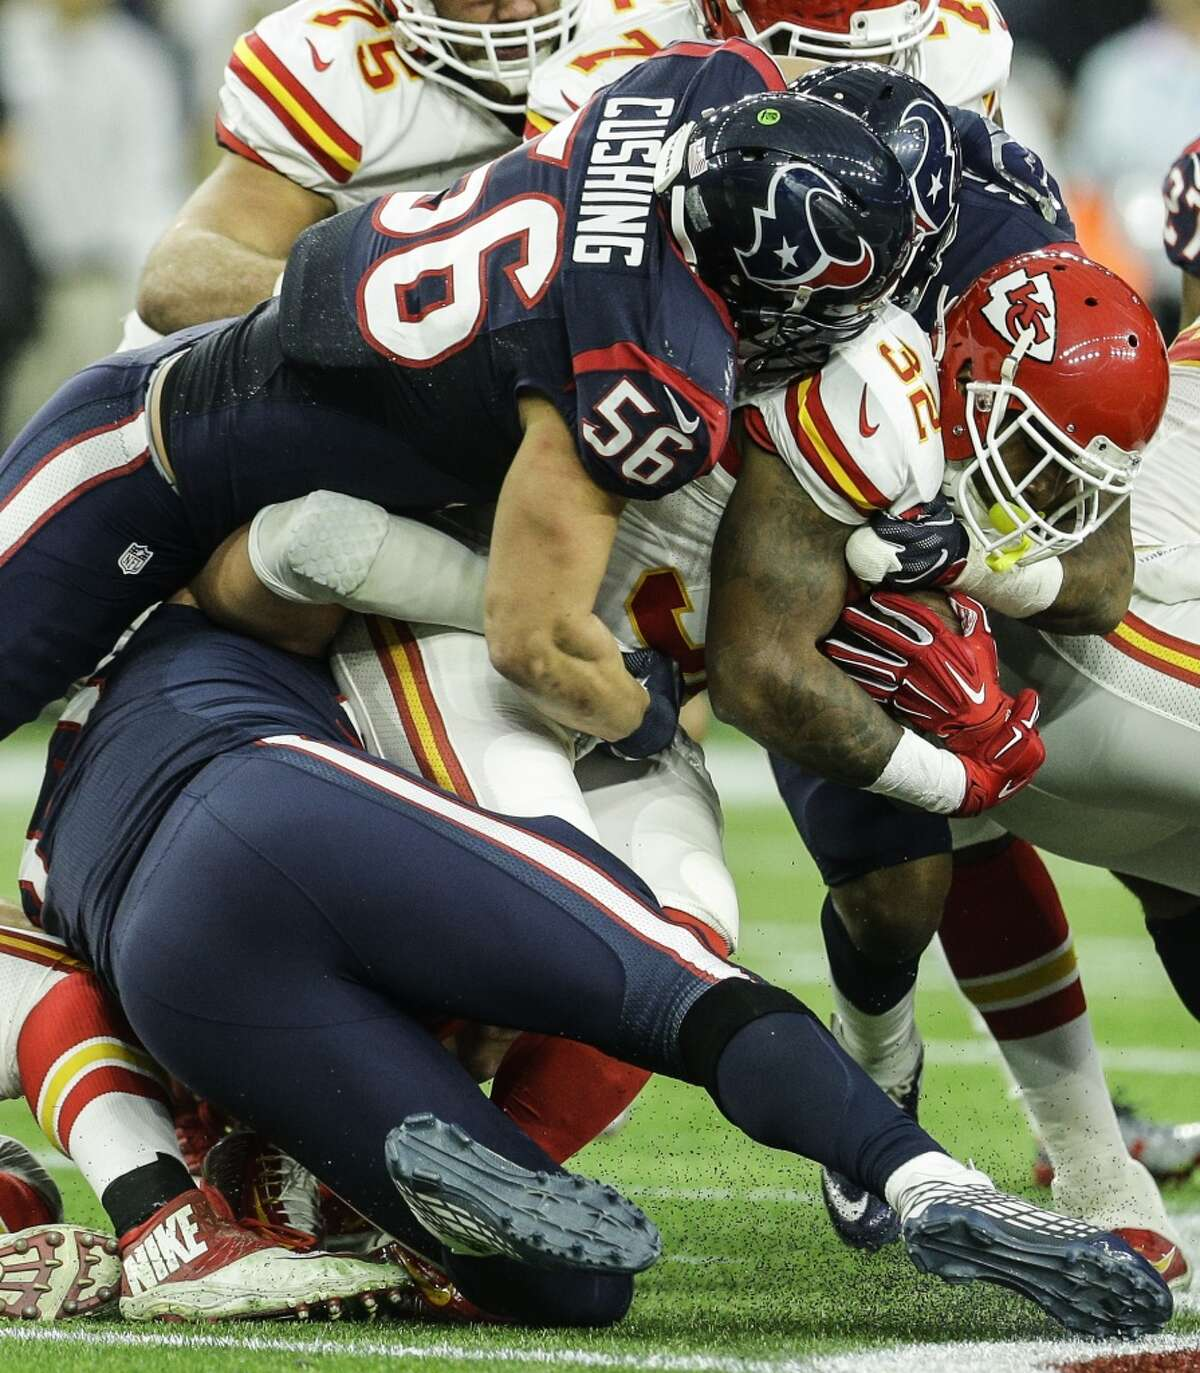 Houston Texans inside linebacker Brian Cushing (56) tackles Kansas City Chiefs running back Spencer Ware (32) after a 2-yard gain during the second quarter of the AFC Wildcard playoff game at NRG Stadium on Saturday, Jan. 9, 2016, in Houston. ( Brett Coomer / Houston Chronicle )